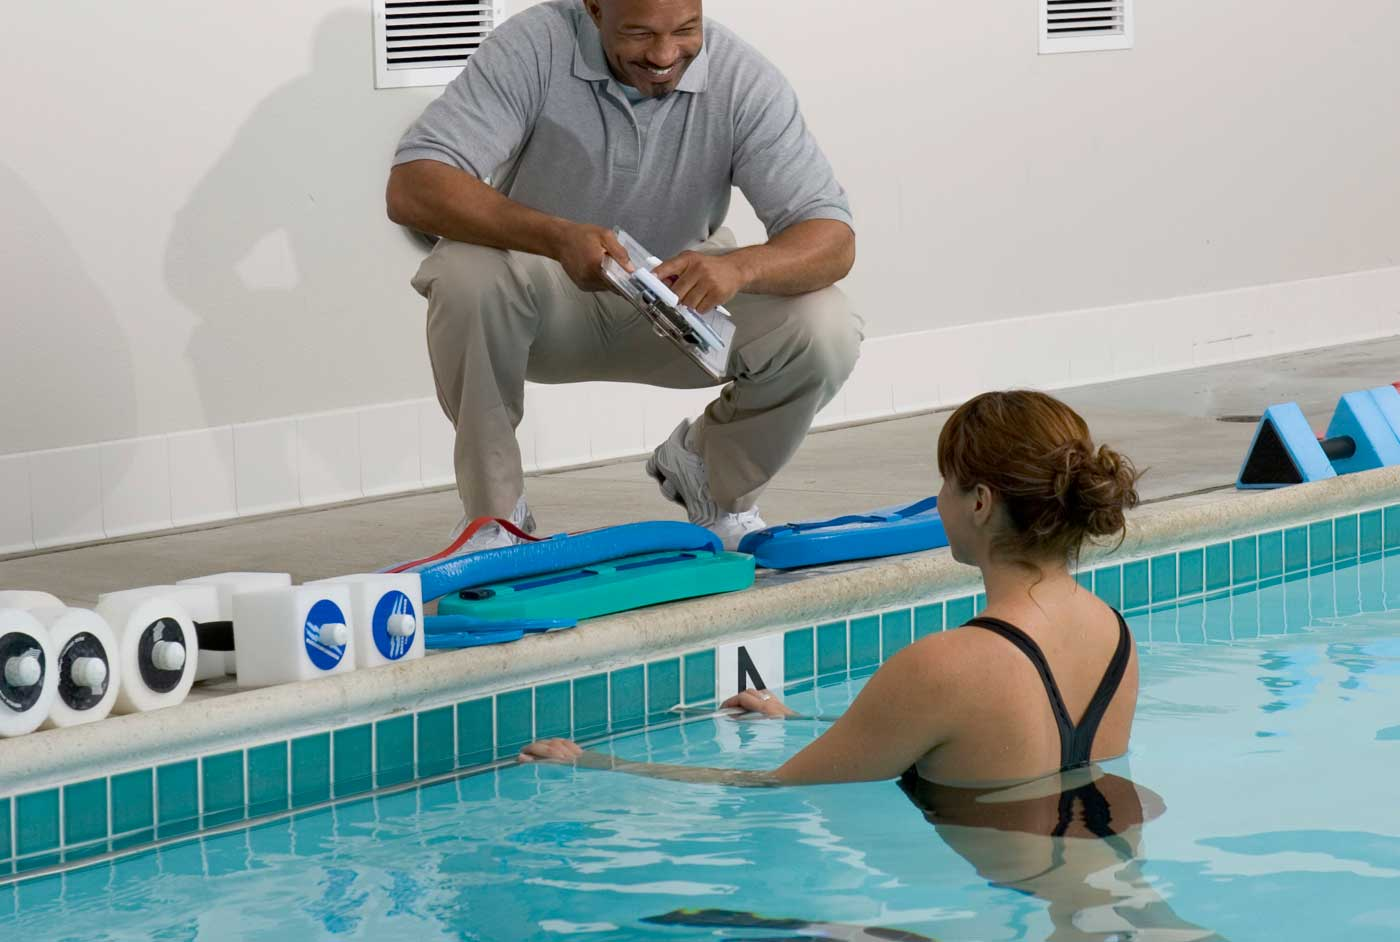 Carbondale oklahoma physical therapy - Carbondale Oklahoma Physical Therapy 10